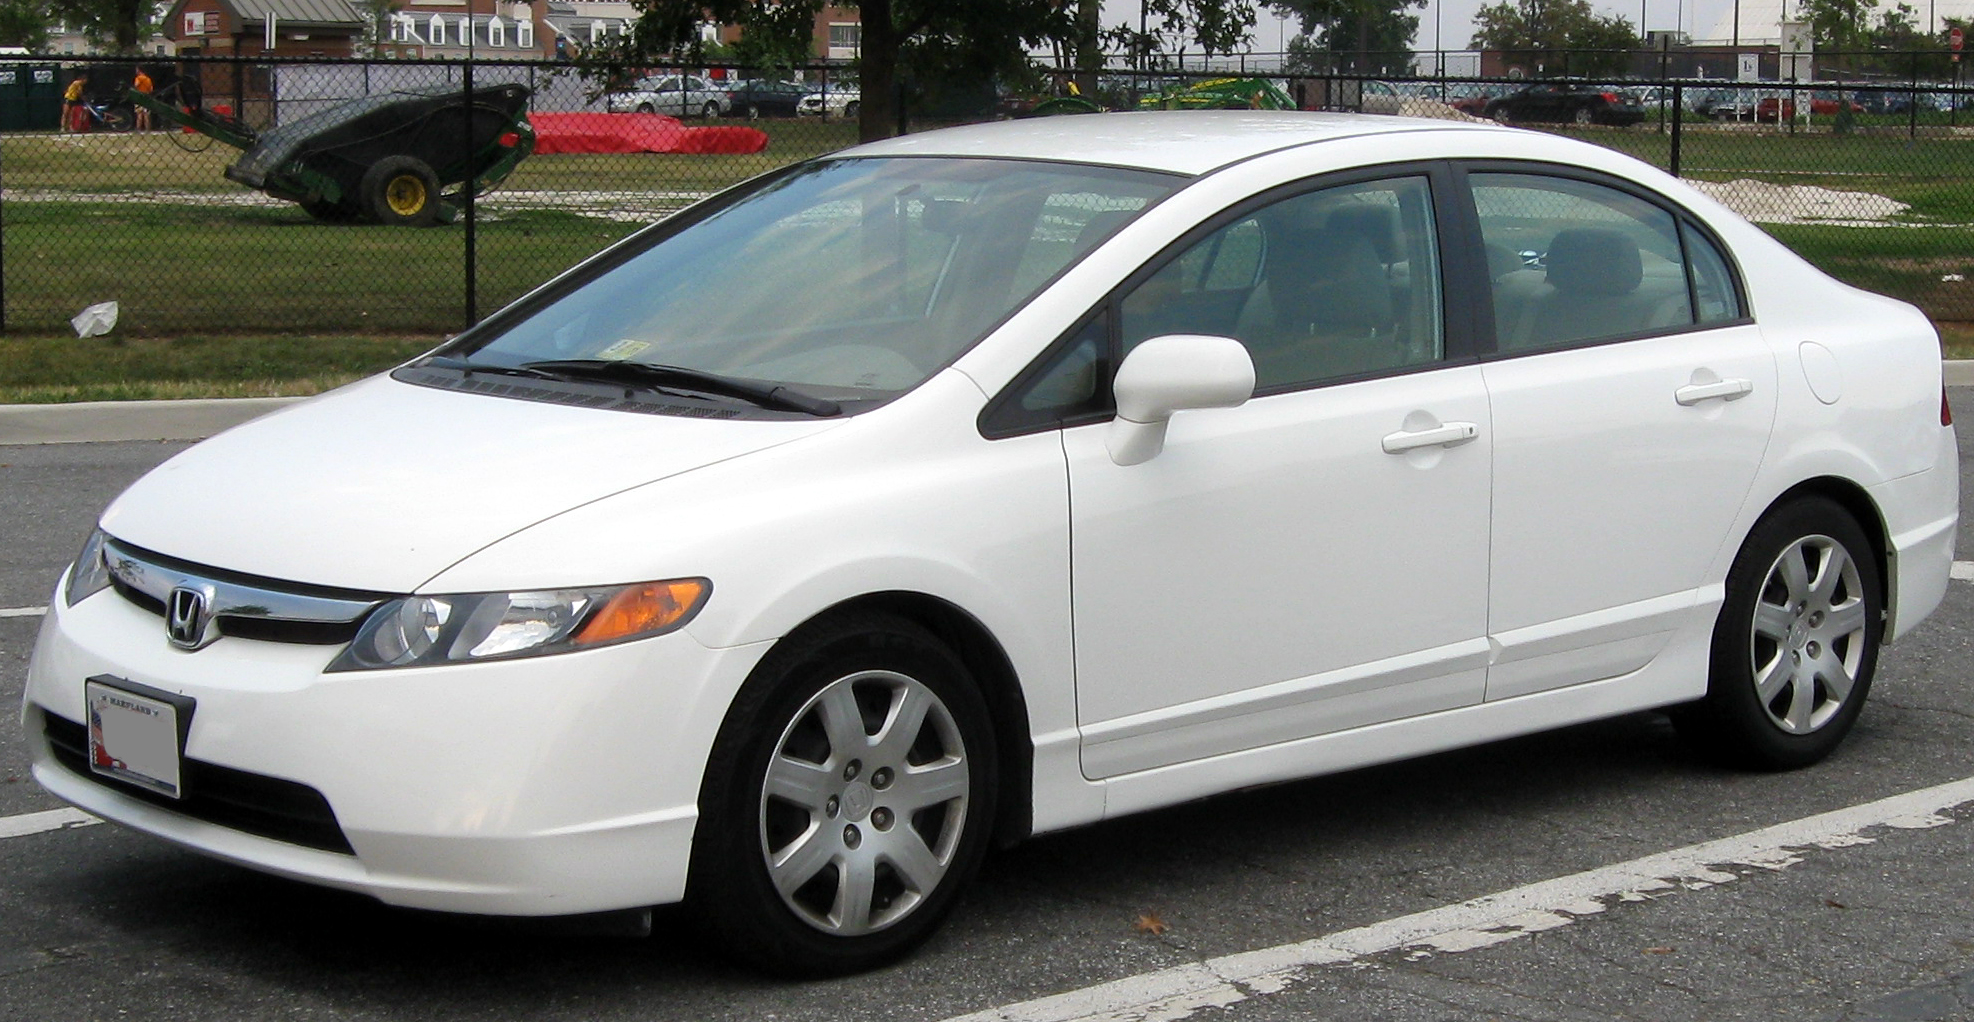 [Image: 2006-2008_Honda_Civic_LX_sedan_--_09-22-2010.jpg]